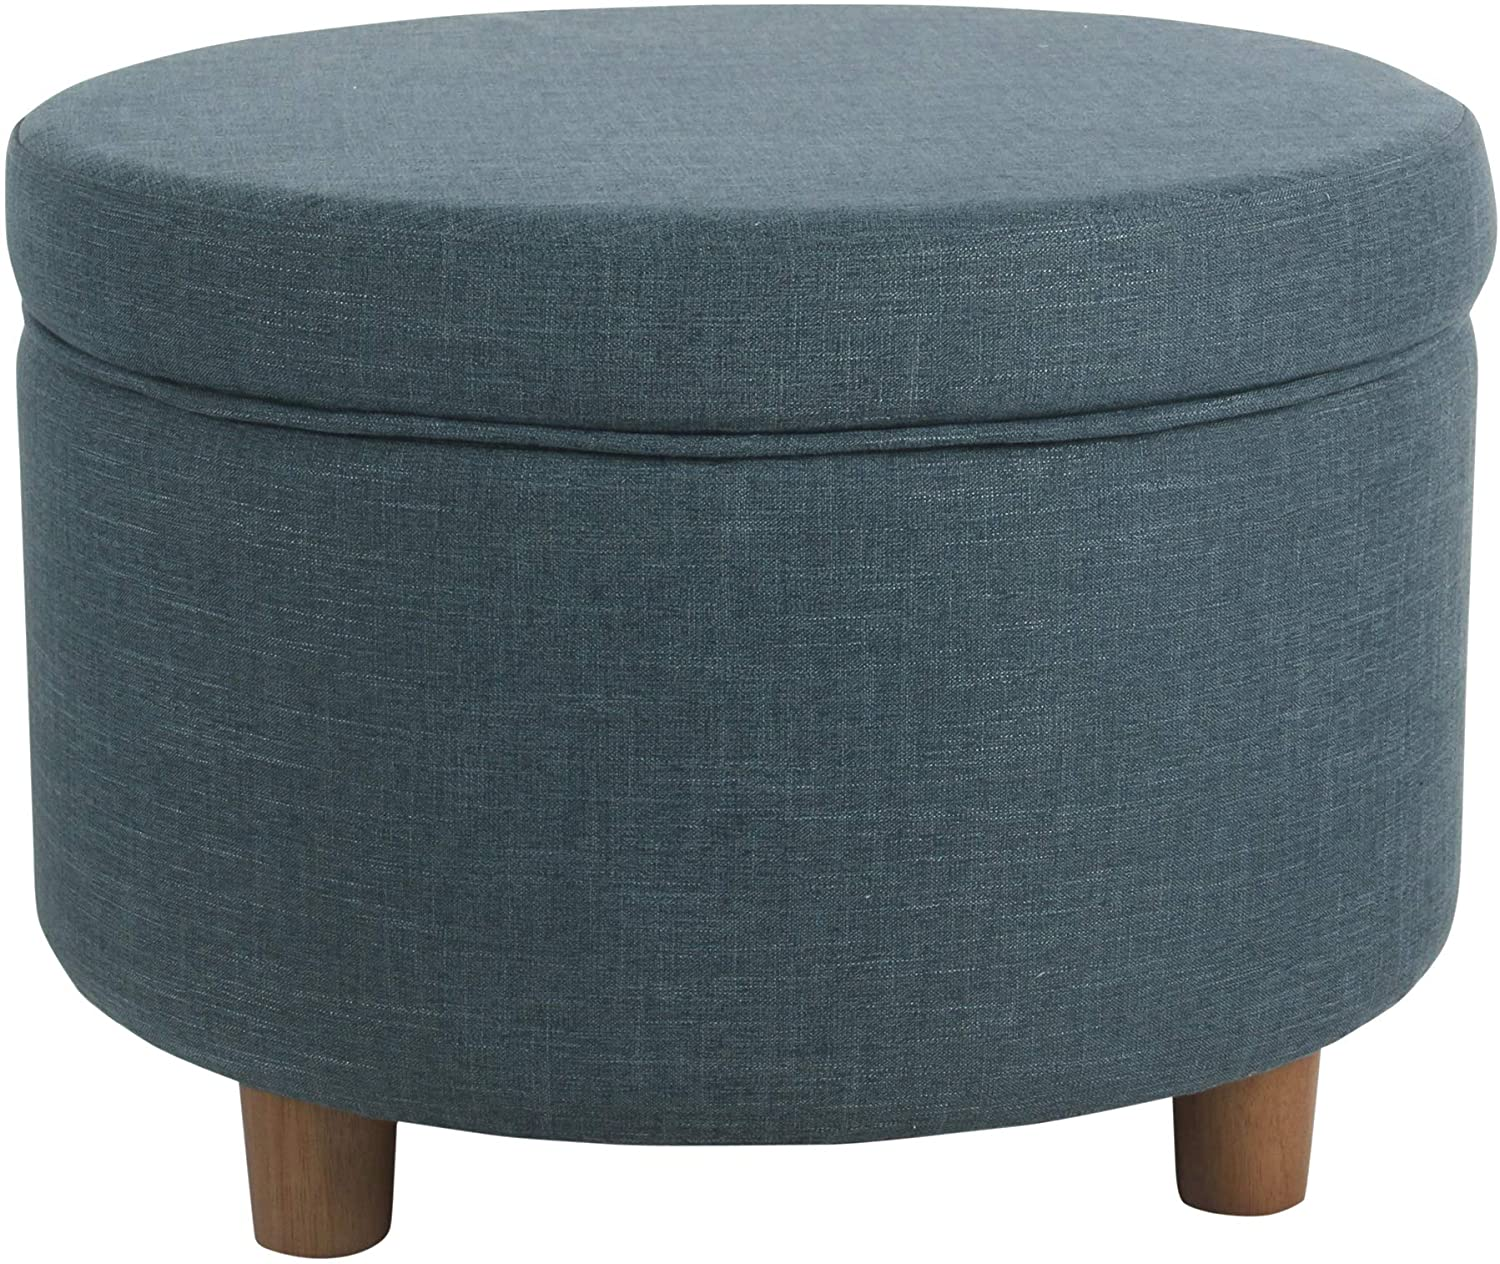 Memphis Mall HomePop Round Upholstered Storage Teal Selling Linen Ottoman